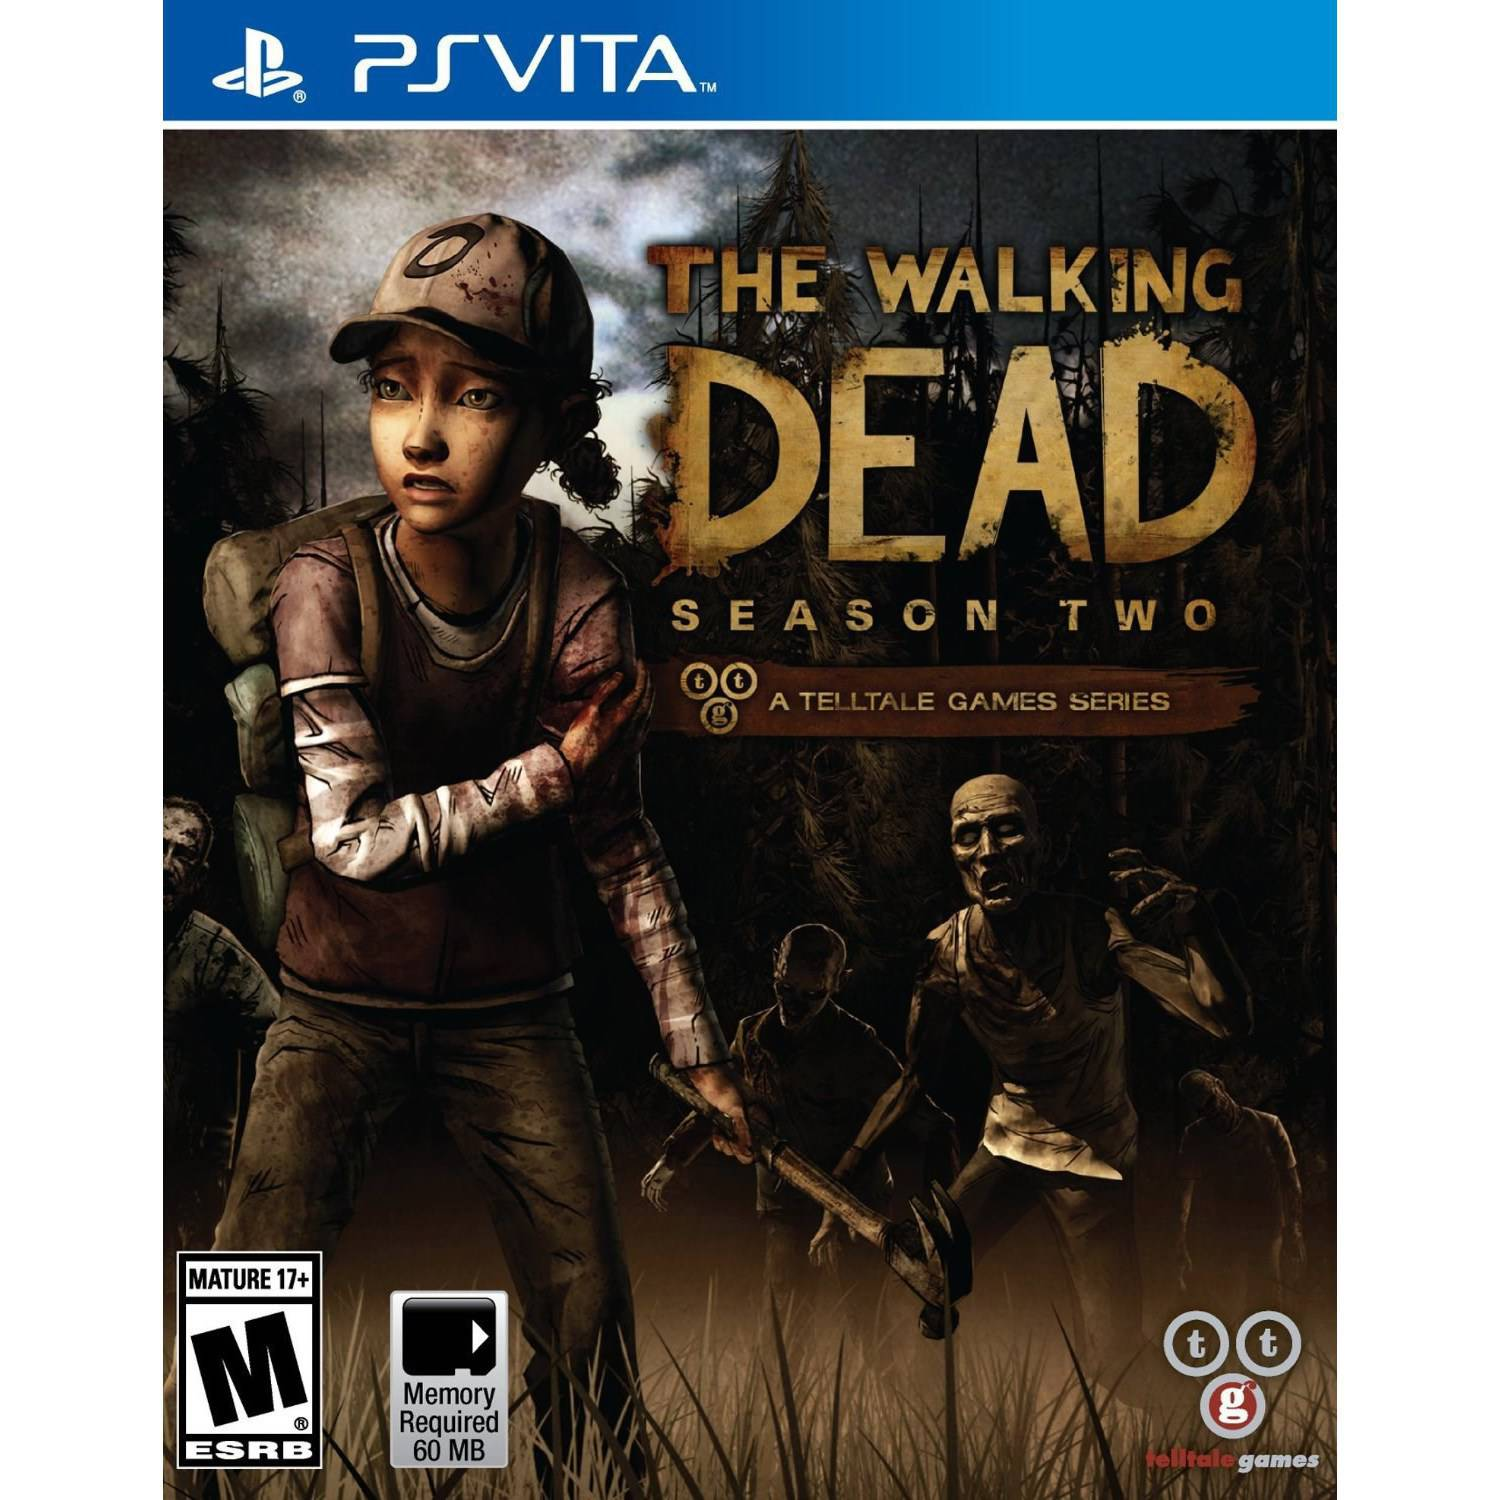 The Walking Dead Seas Two (PSV) - Pre-Owned